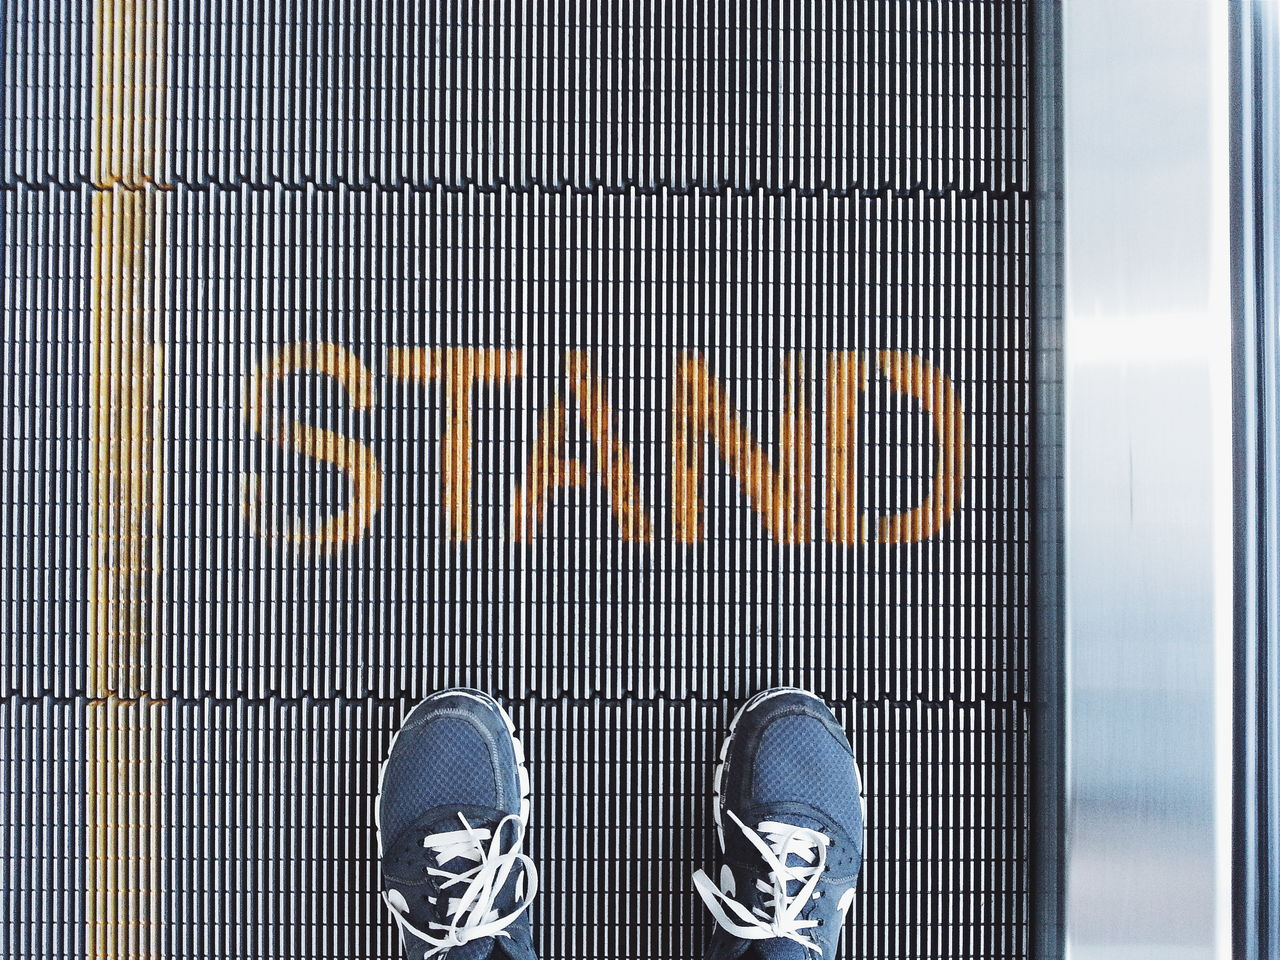 Low section of man standing on escalator with text